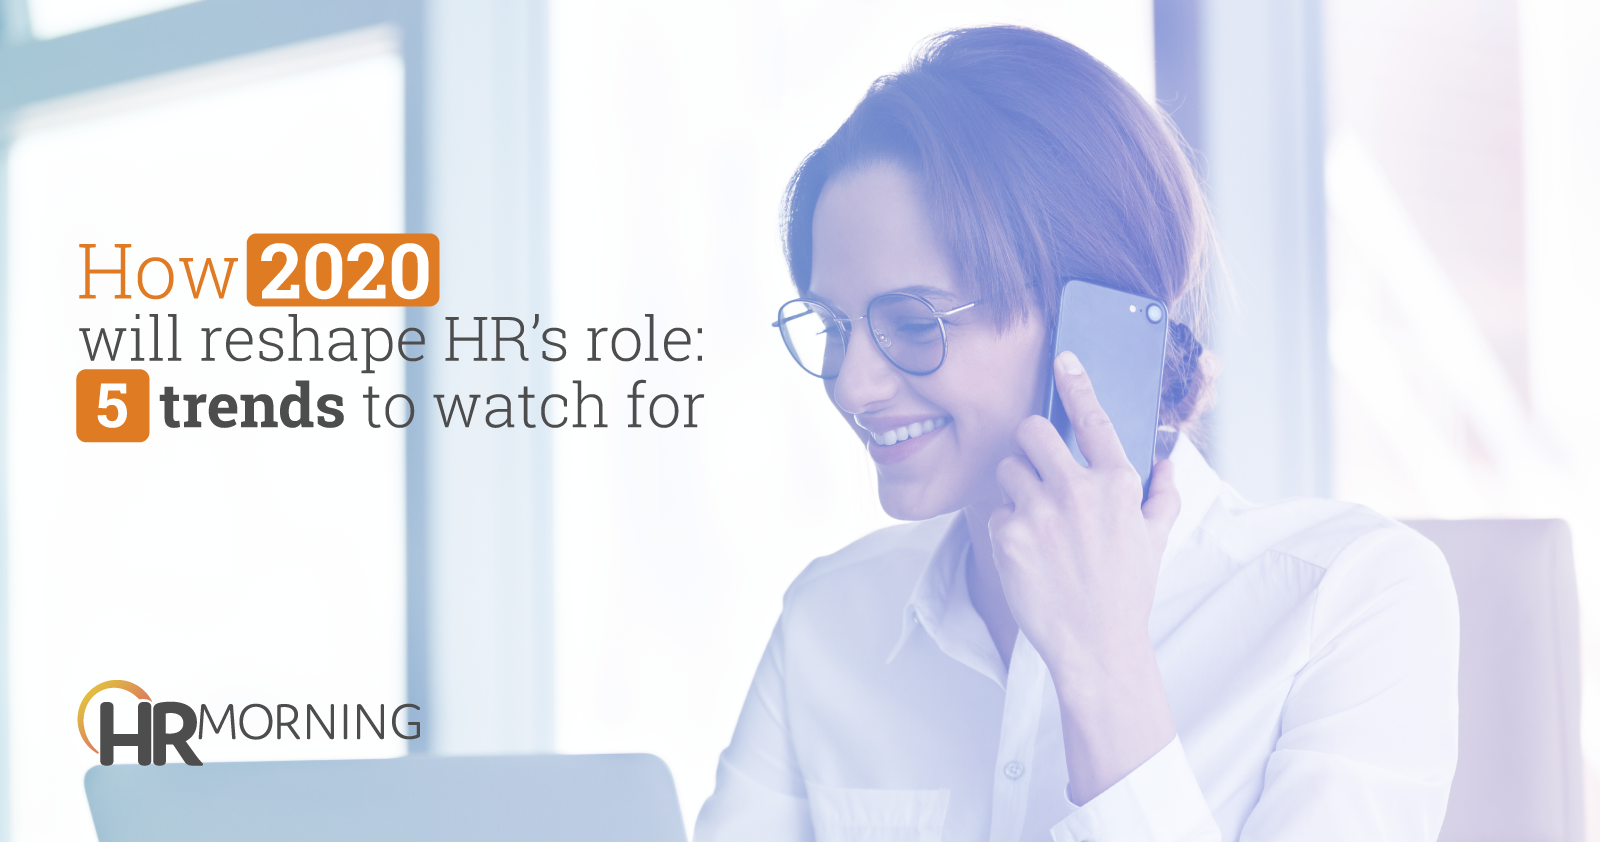 HR's role, 5 trends